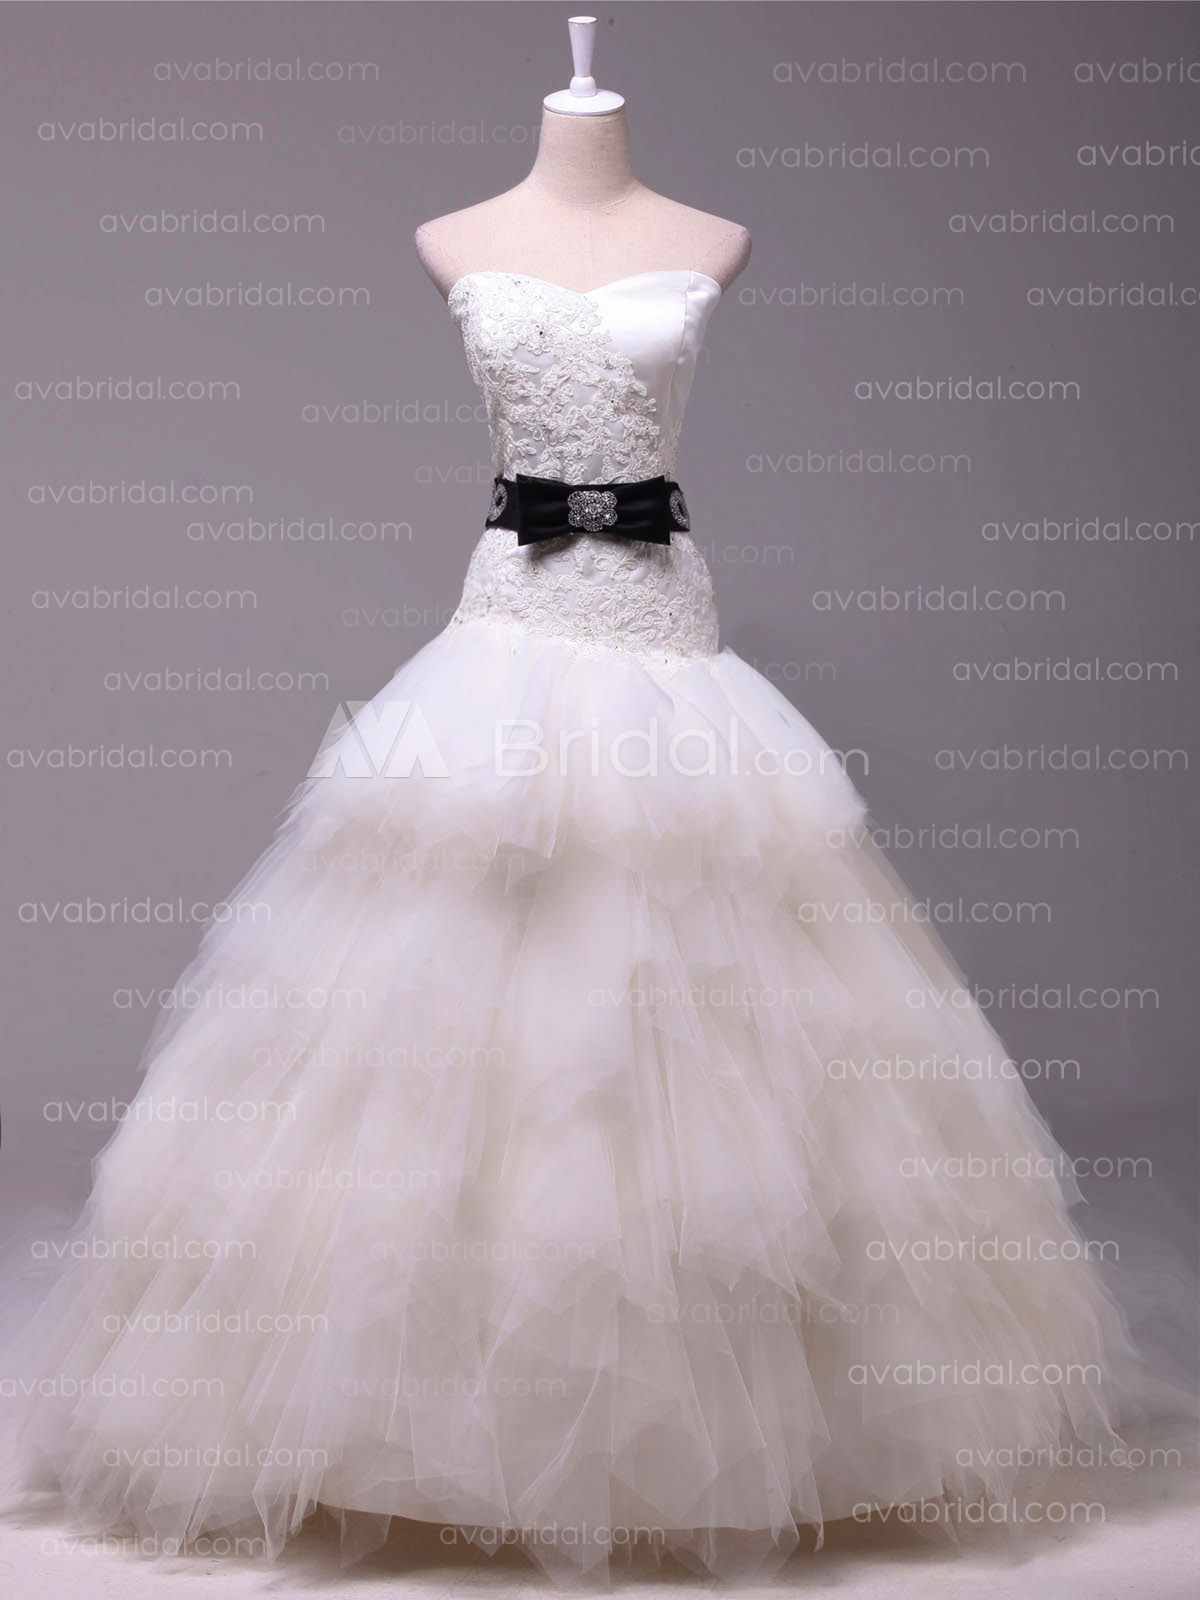 Chic Ball Gown - Nathaly - Front